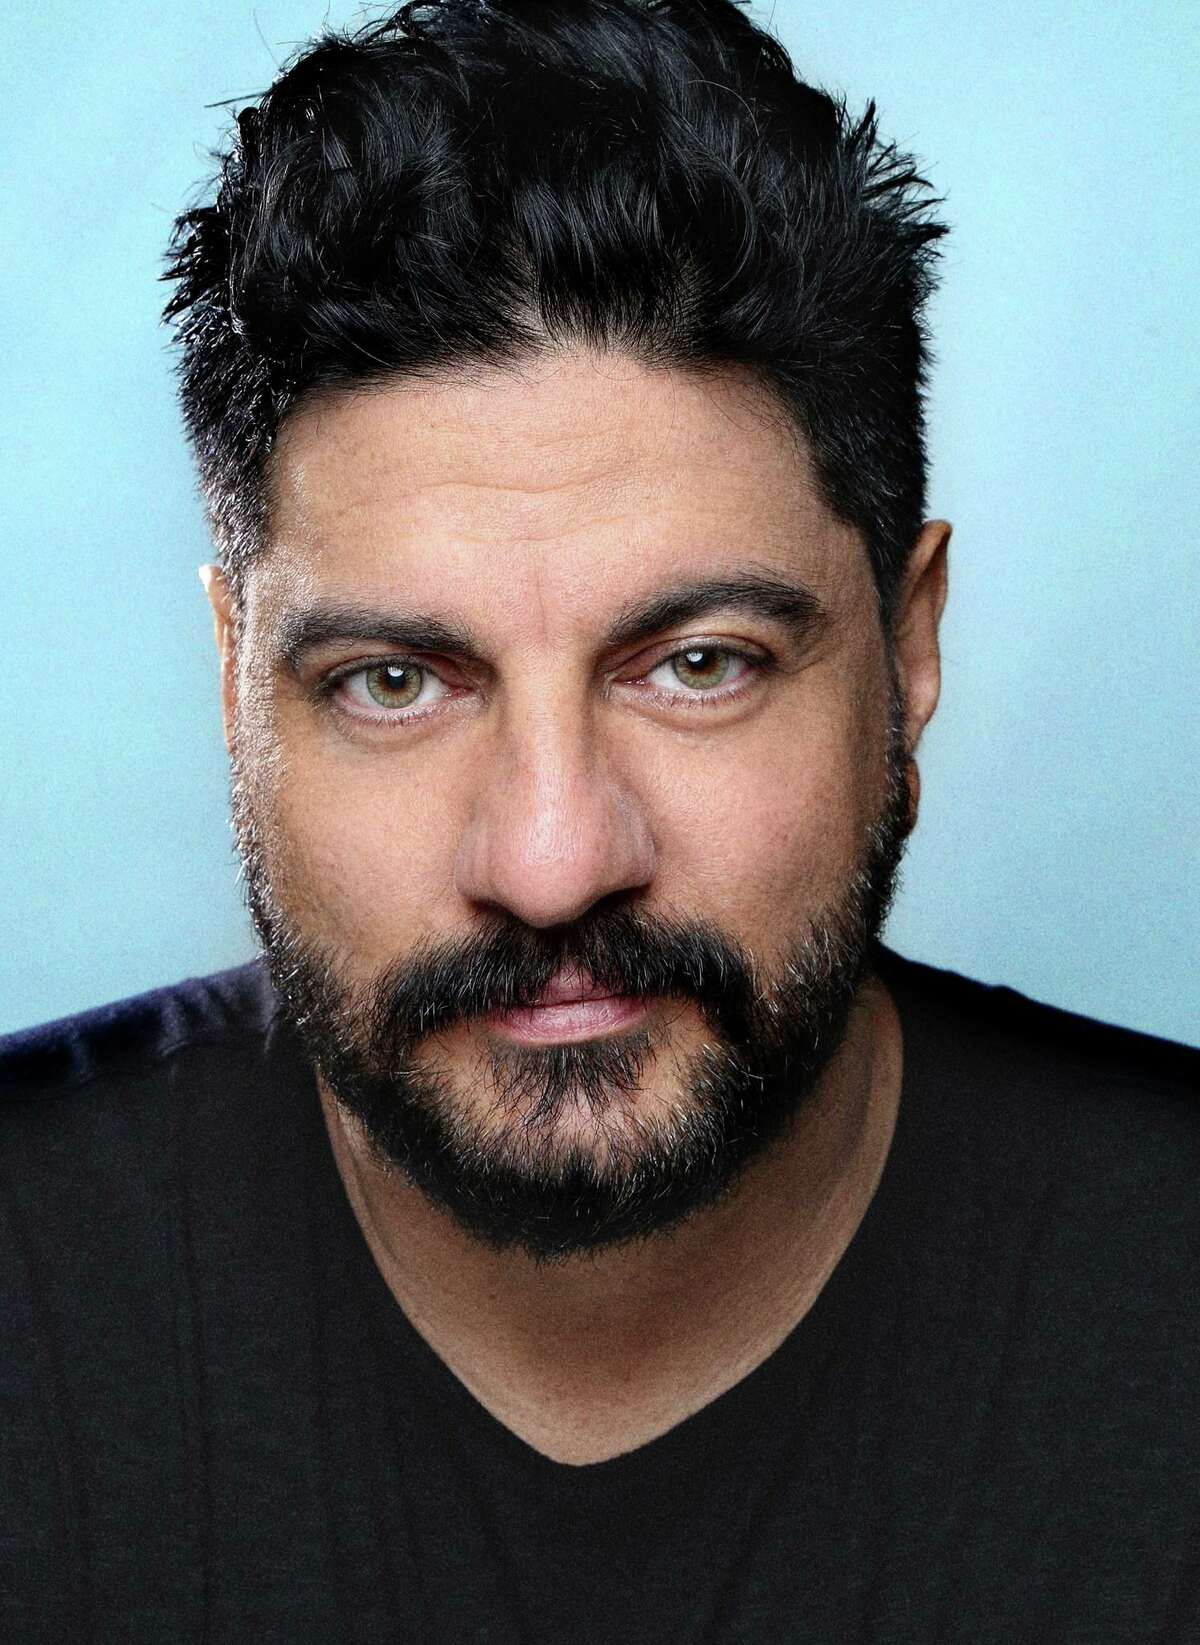 Comedian Frank Liotti headlines two shows at The Fairfield Comedy Club on Aug. 3.